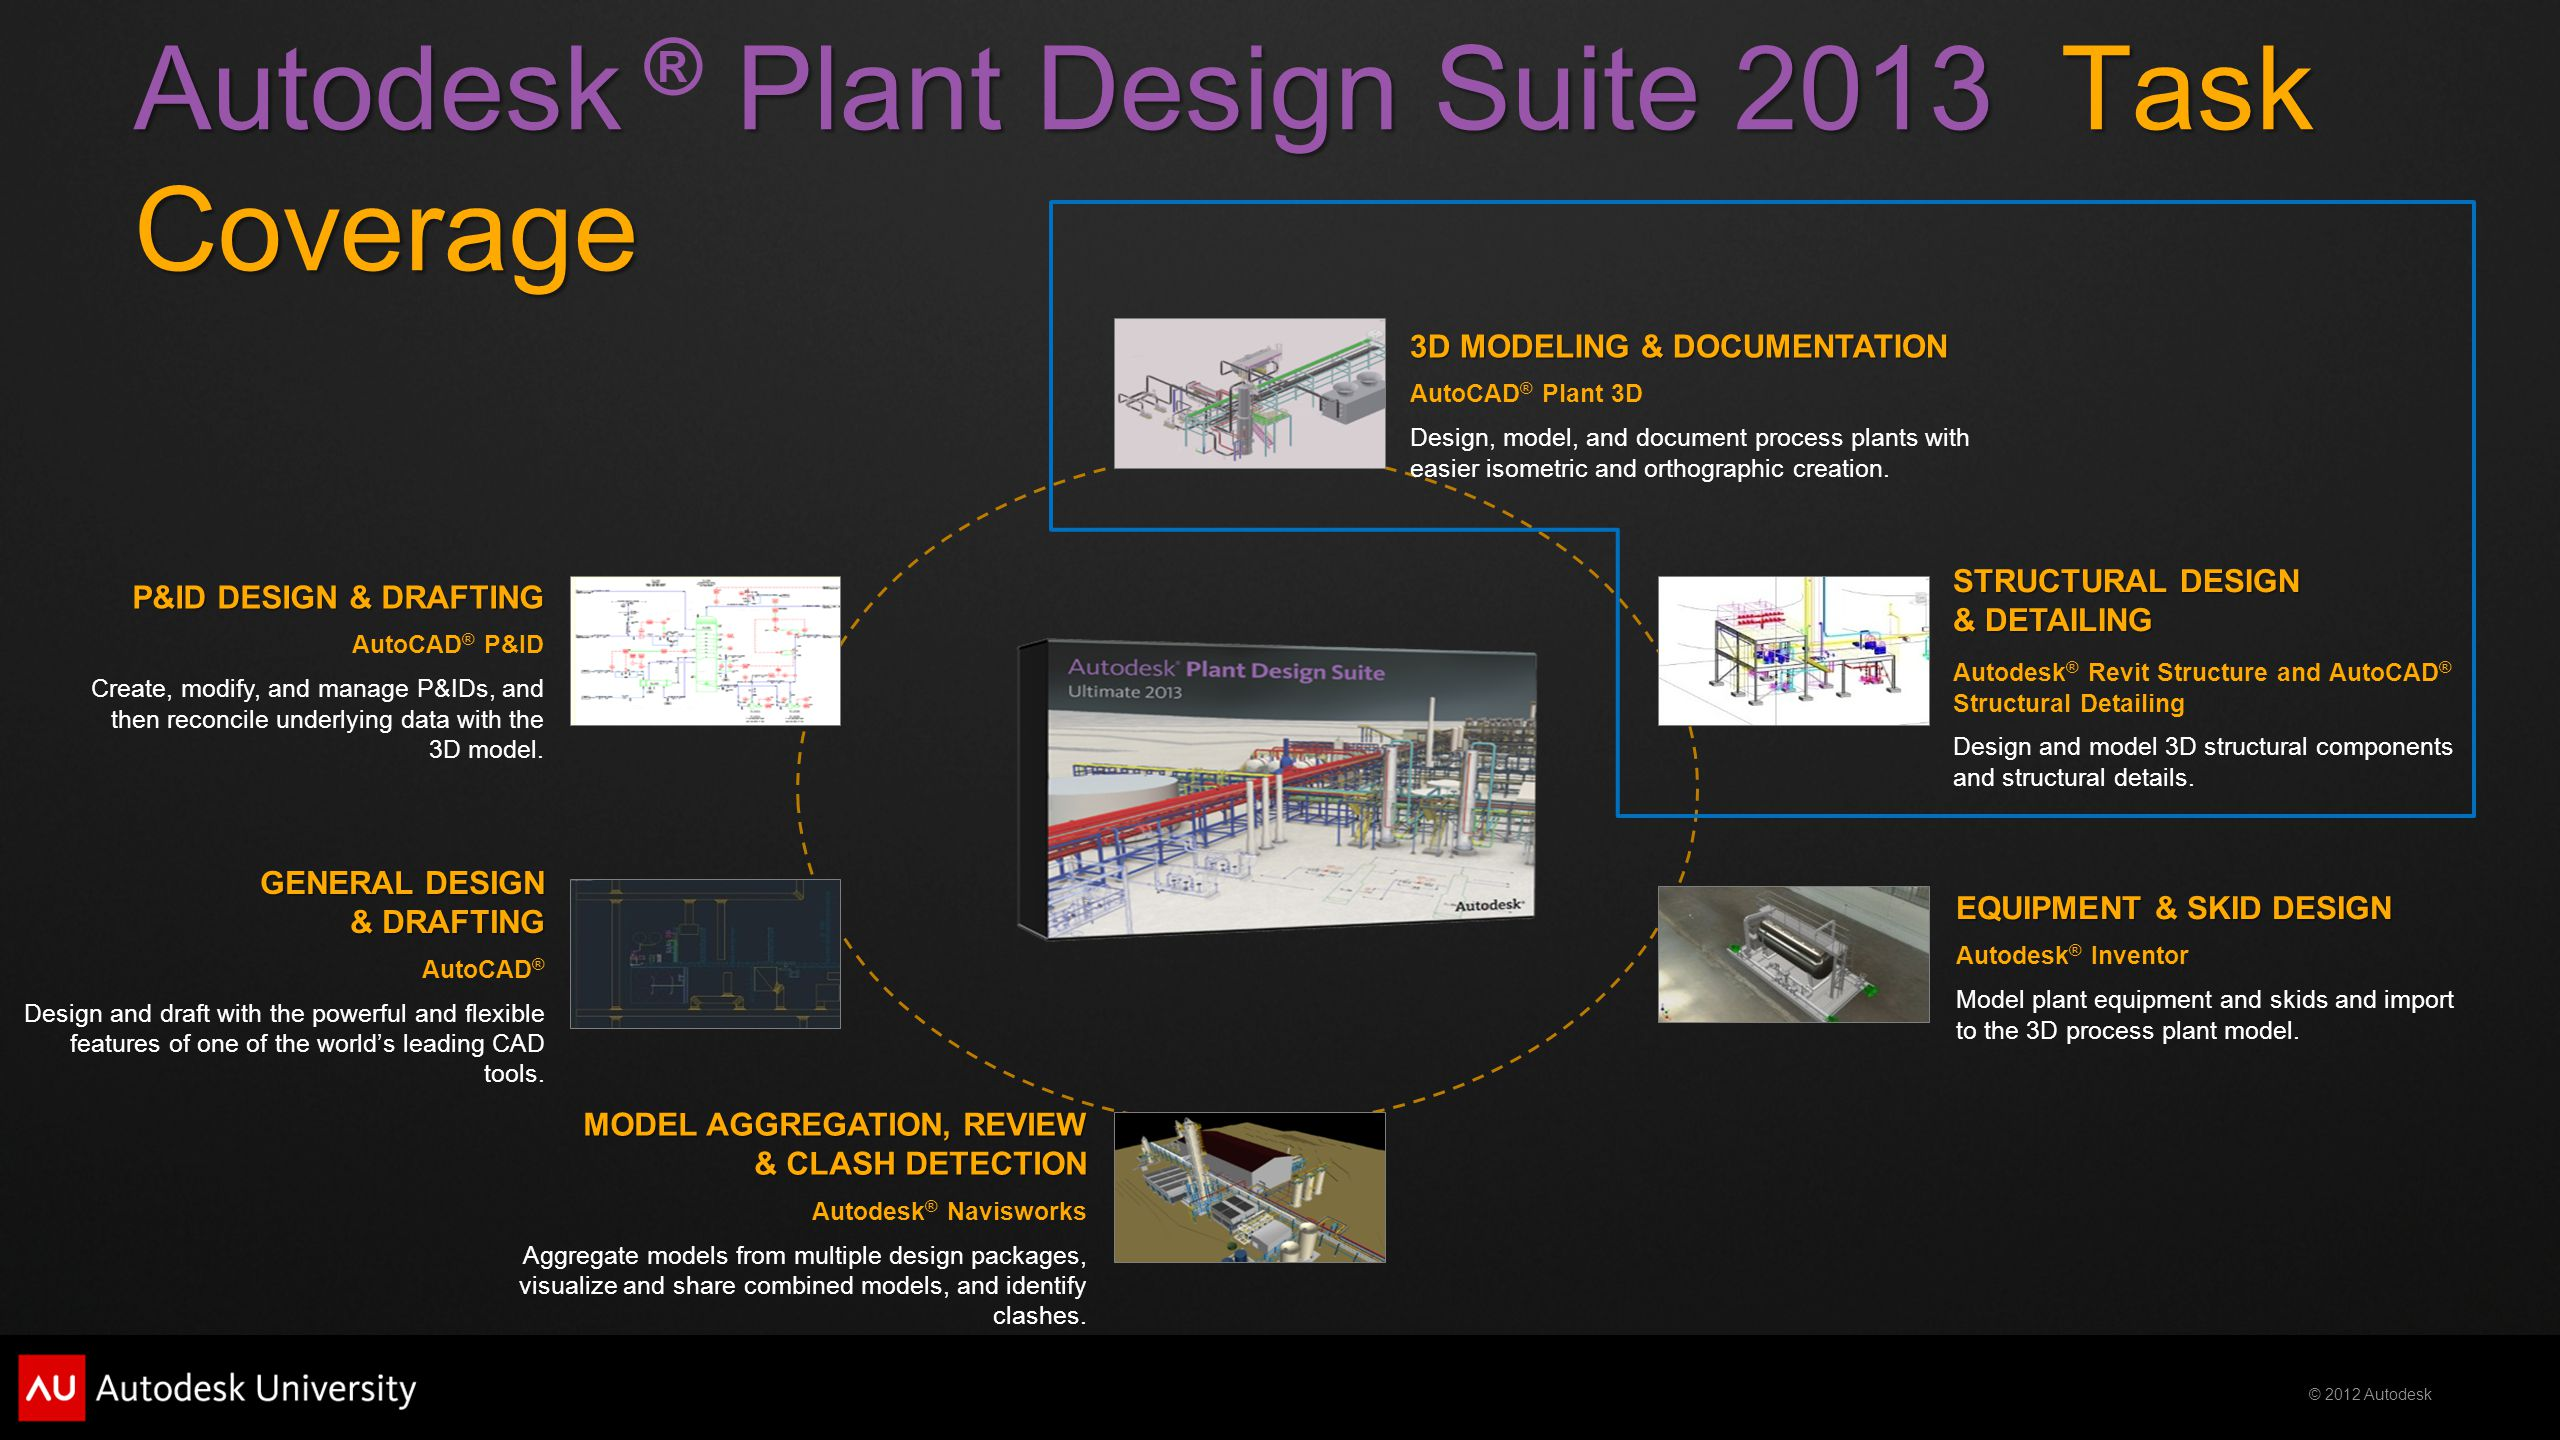 © 2012 Autodesk P&ID DESIGN & DRAFTING AutoCAD ® P&ID Create, modify, and manage P&IDs, and then reconcile underlying data with the 3D model. MODEL AG